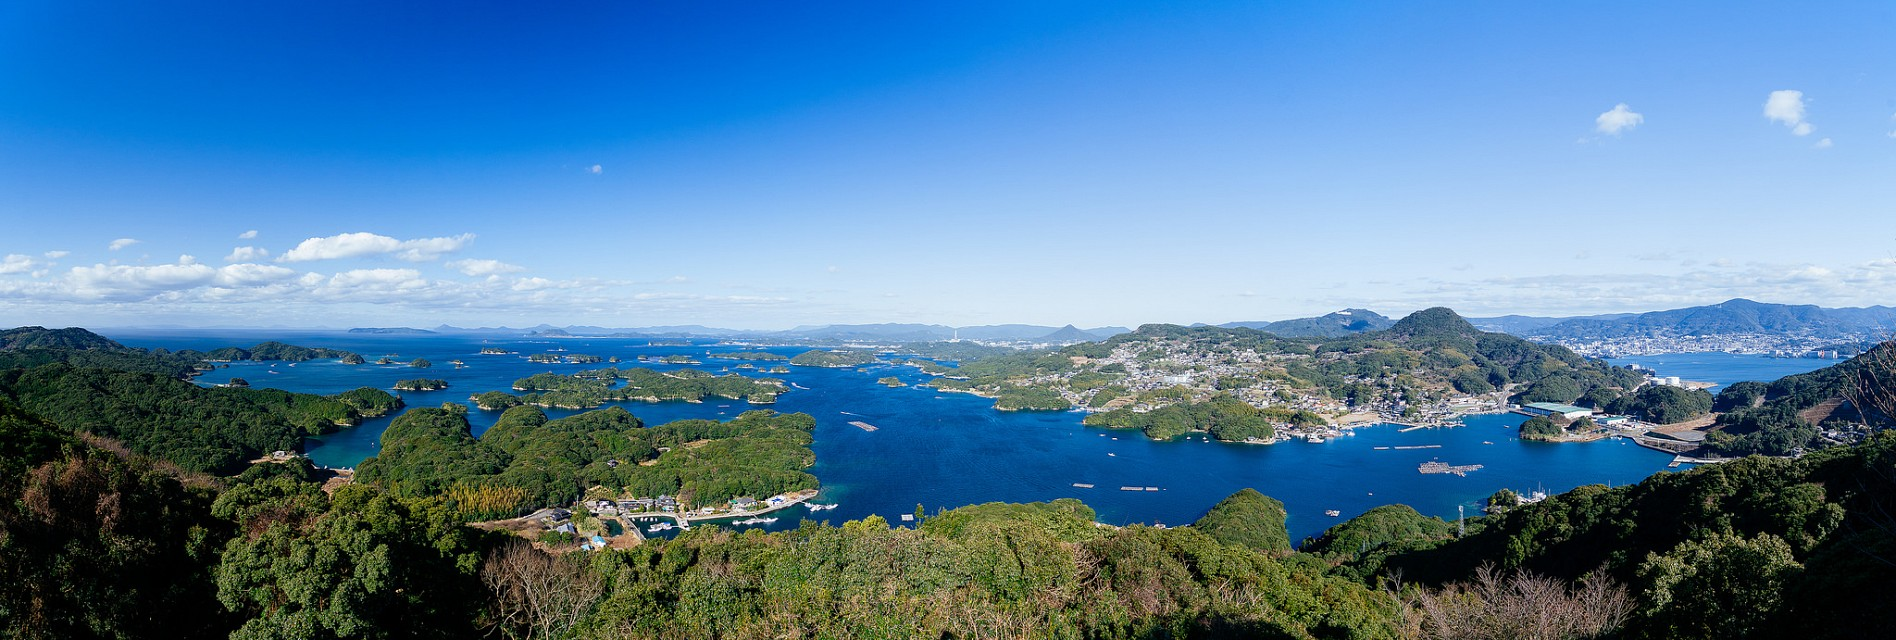 九十九島と佐世保港 Kujukushima and Sasebo Port - Kujūkushima